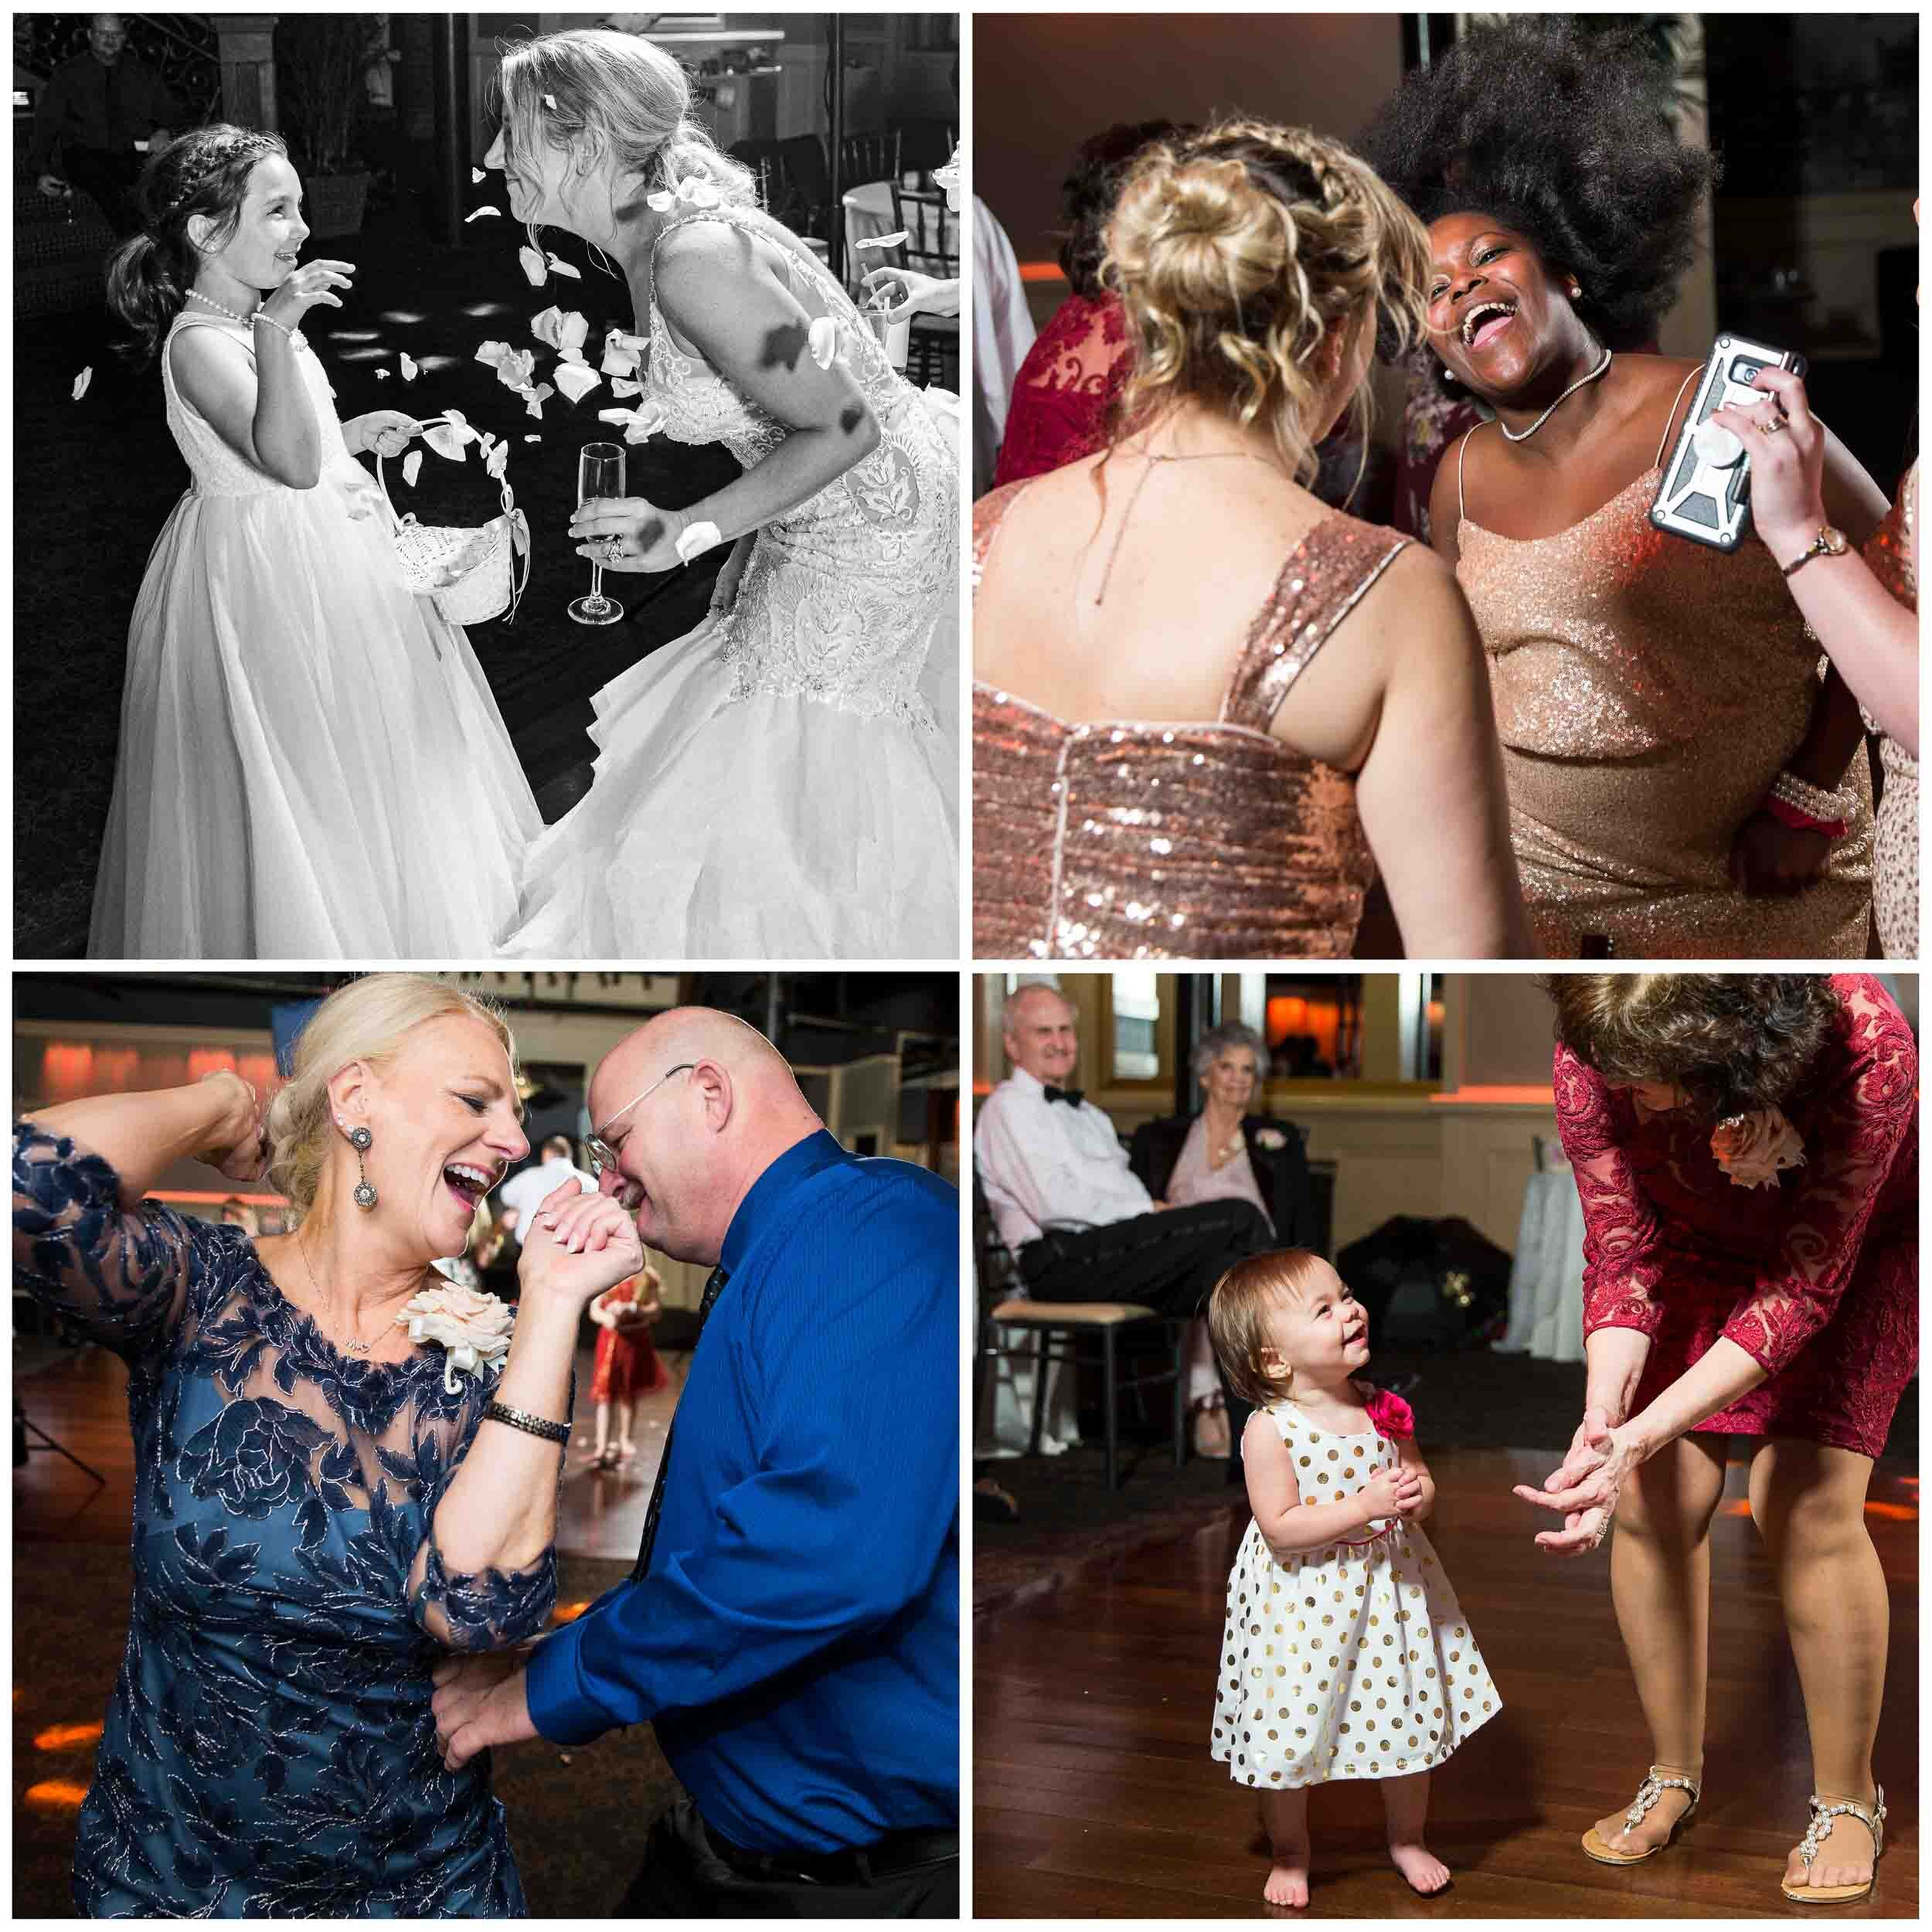 106-Generations-Hall-New-Orleans-Wedding-Reception-Photo-Willows-World-Photo.jpg